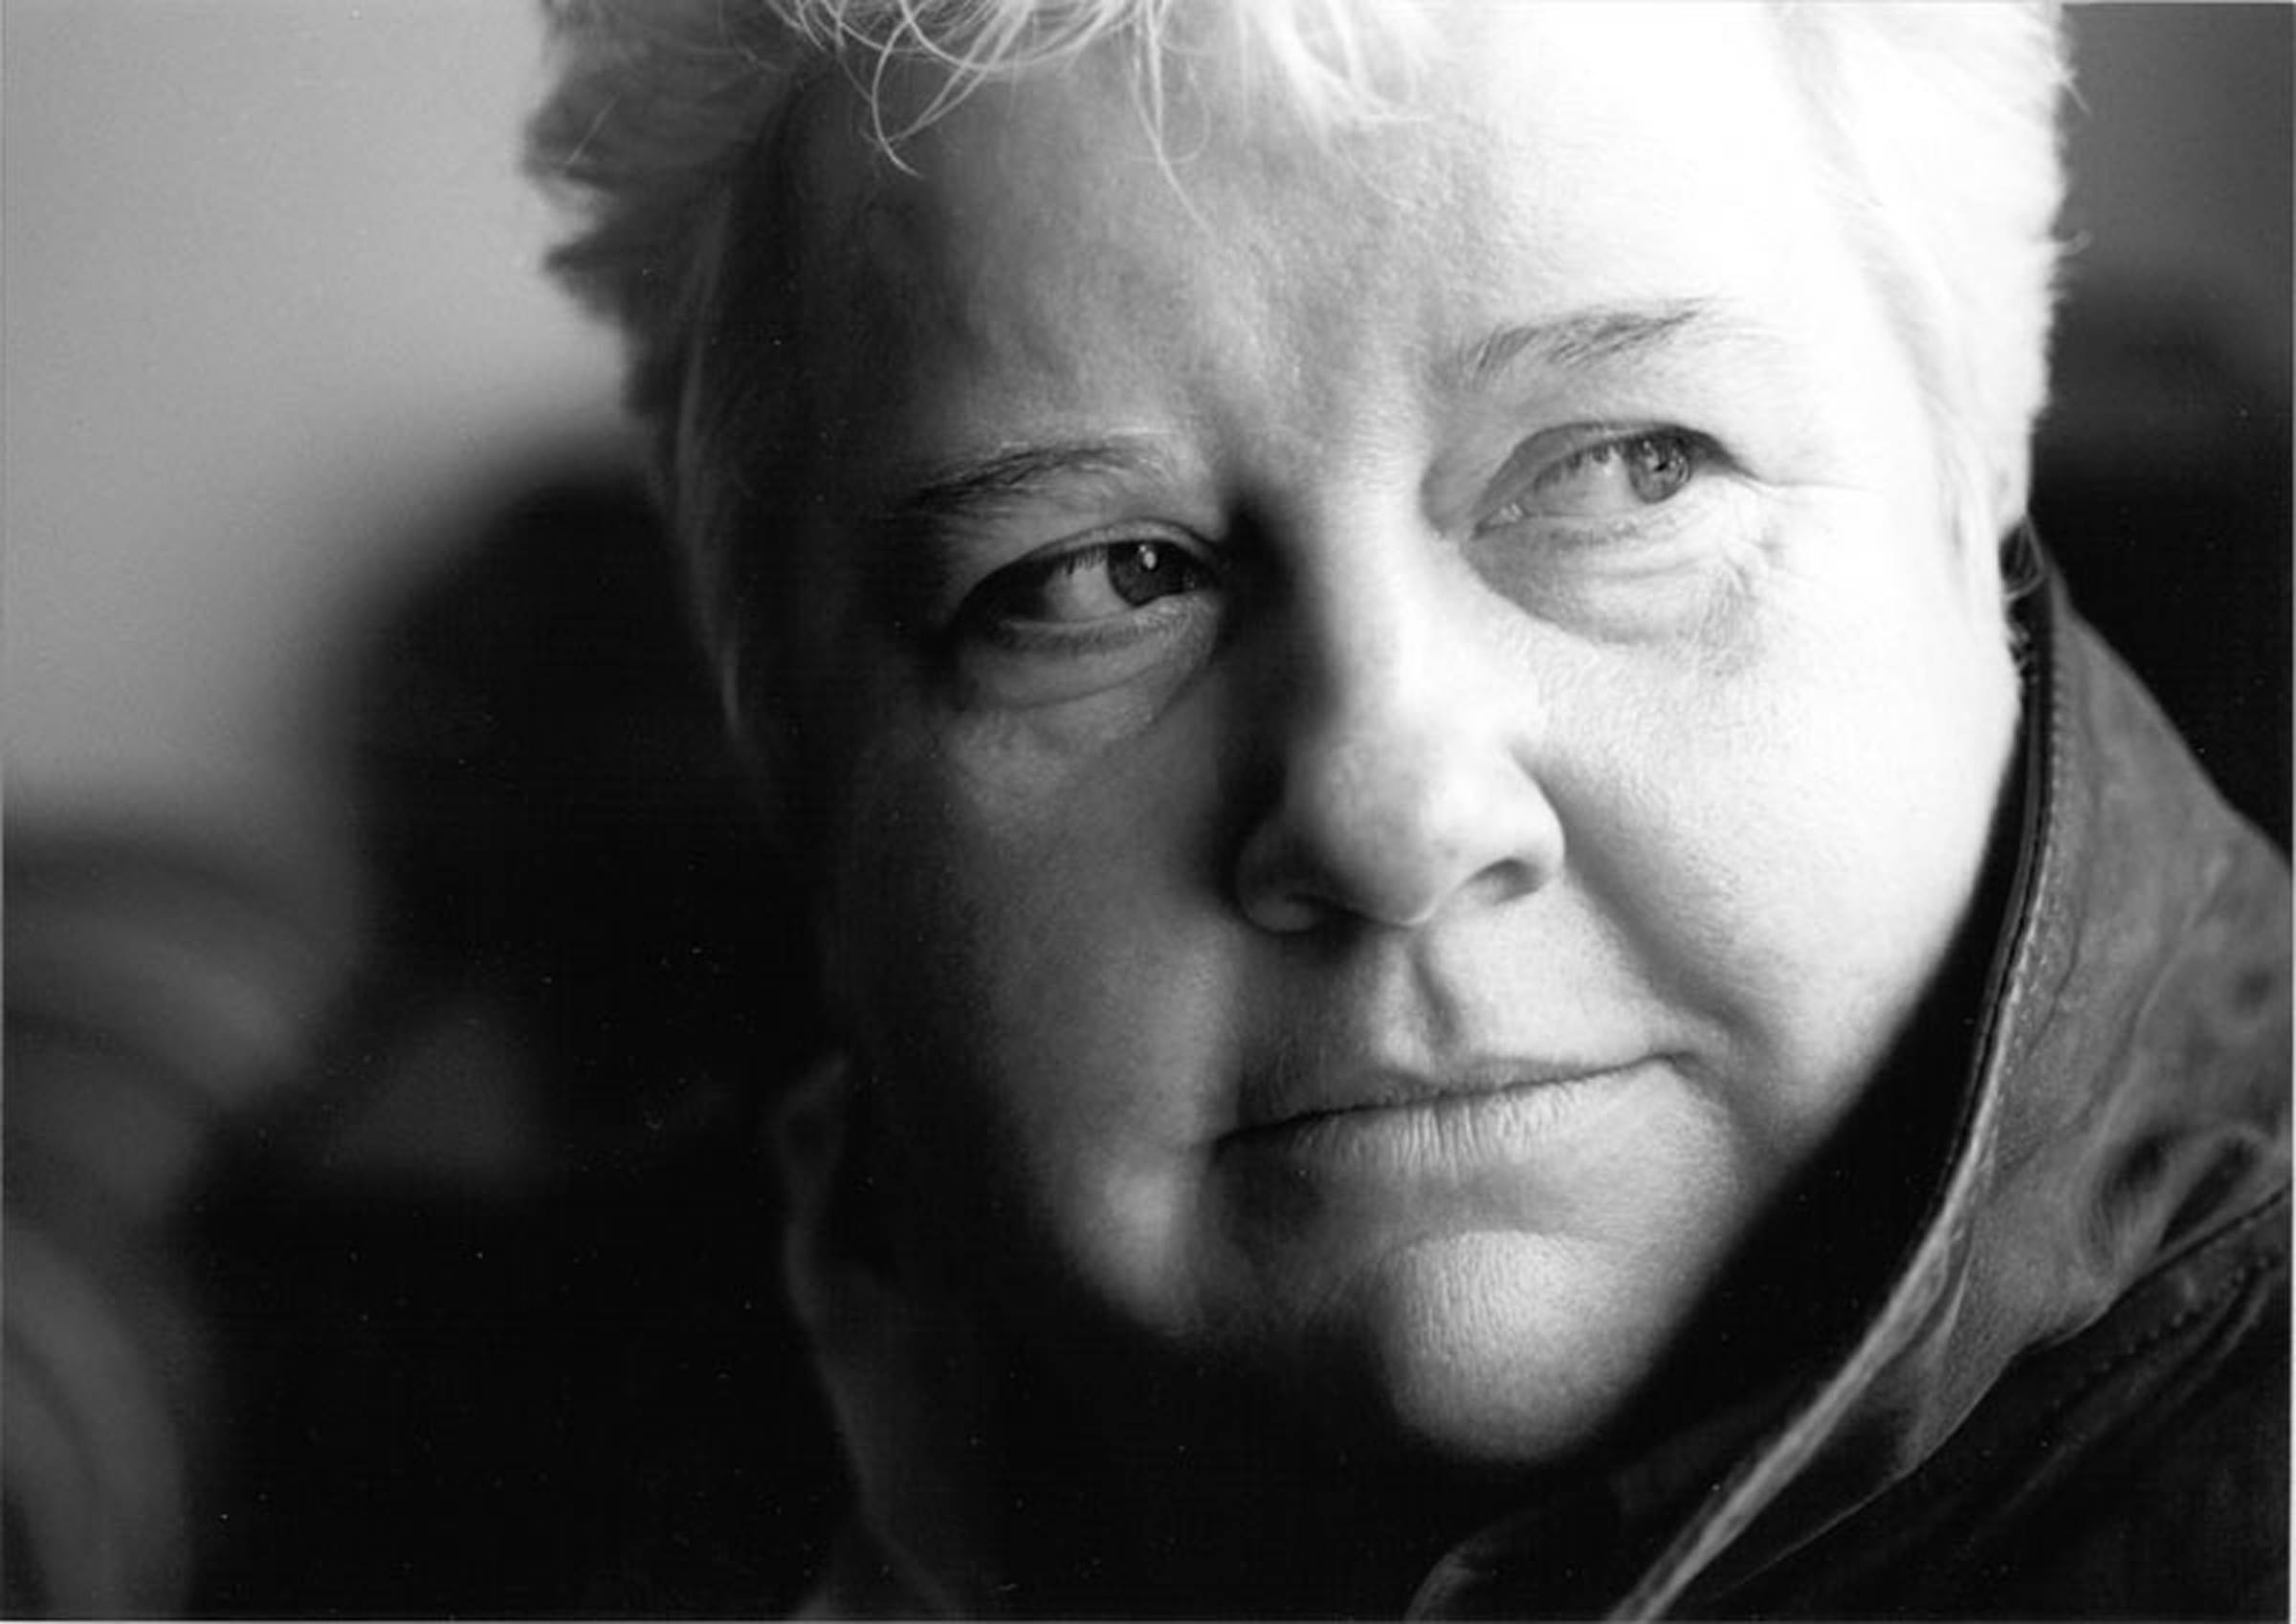 Image of Val McDermid with Insidious Intent